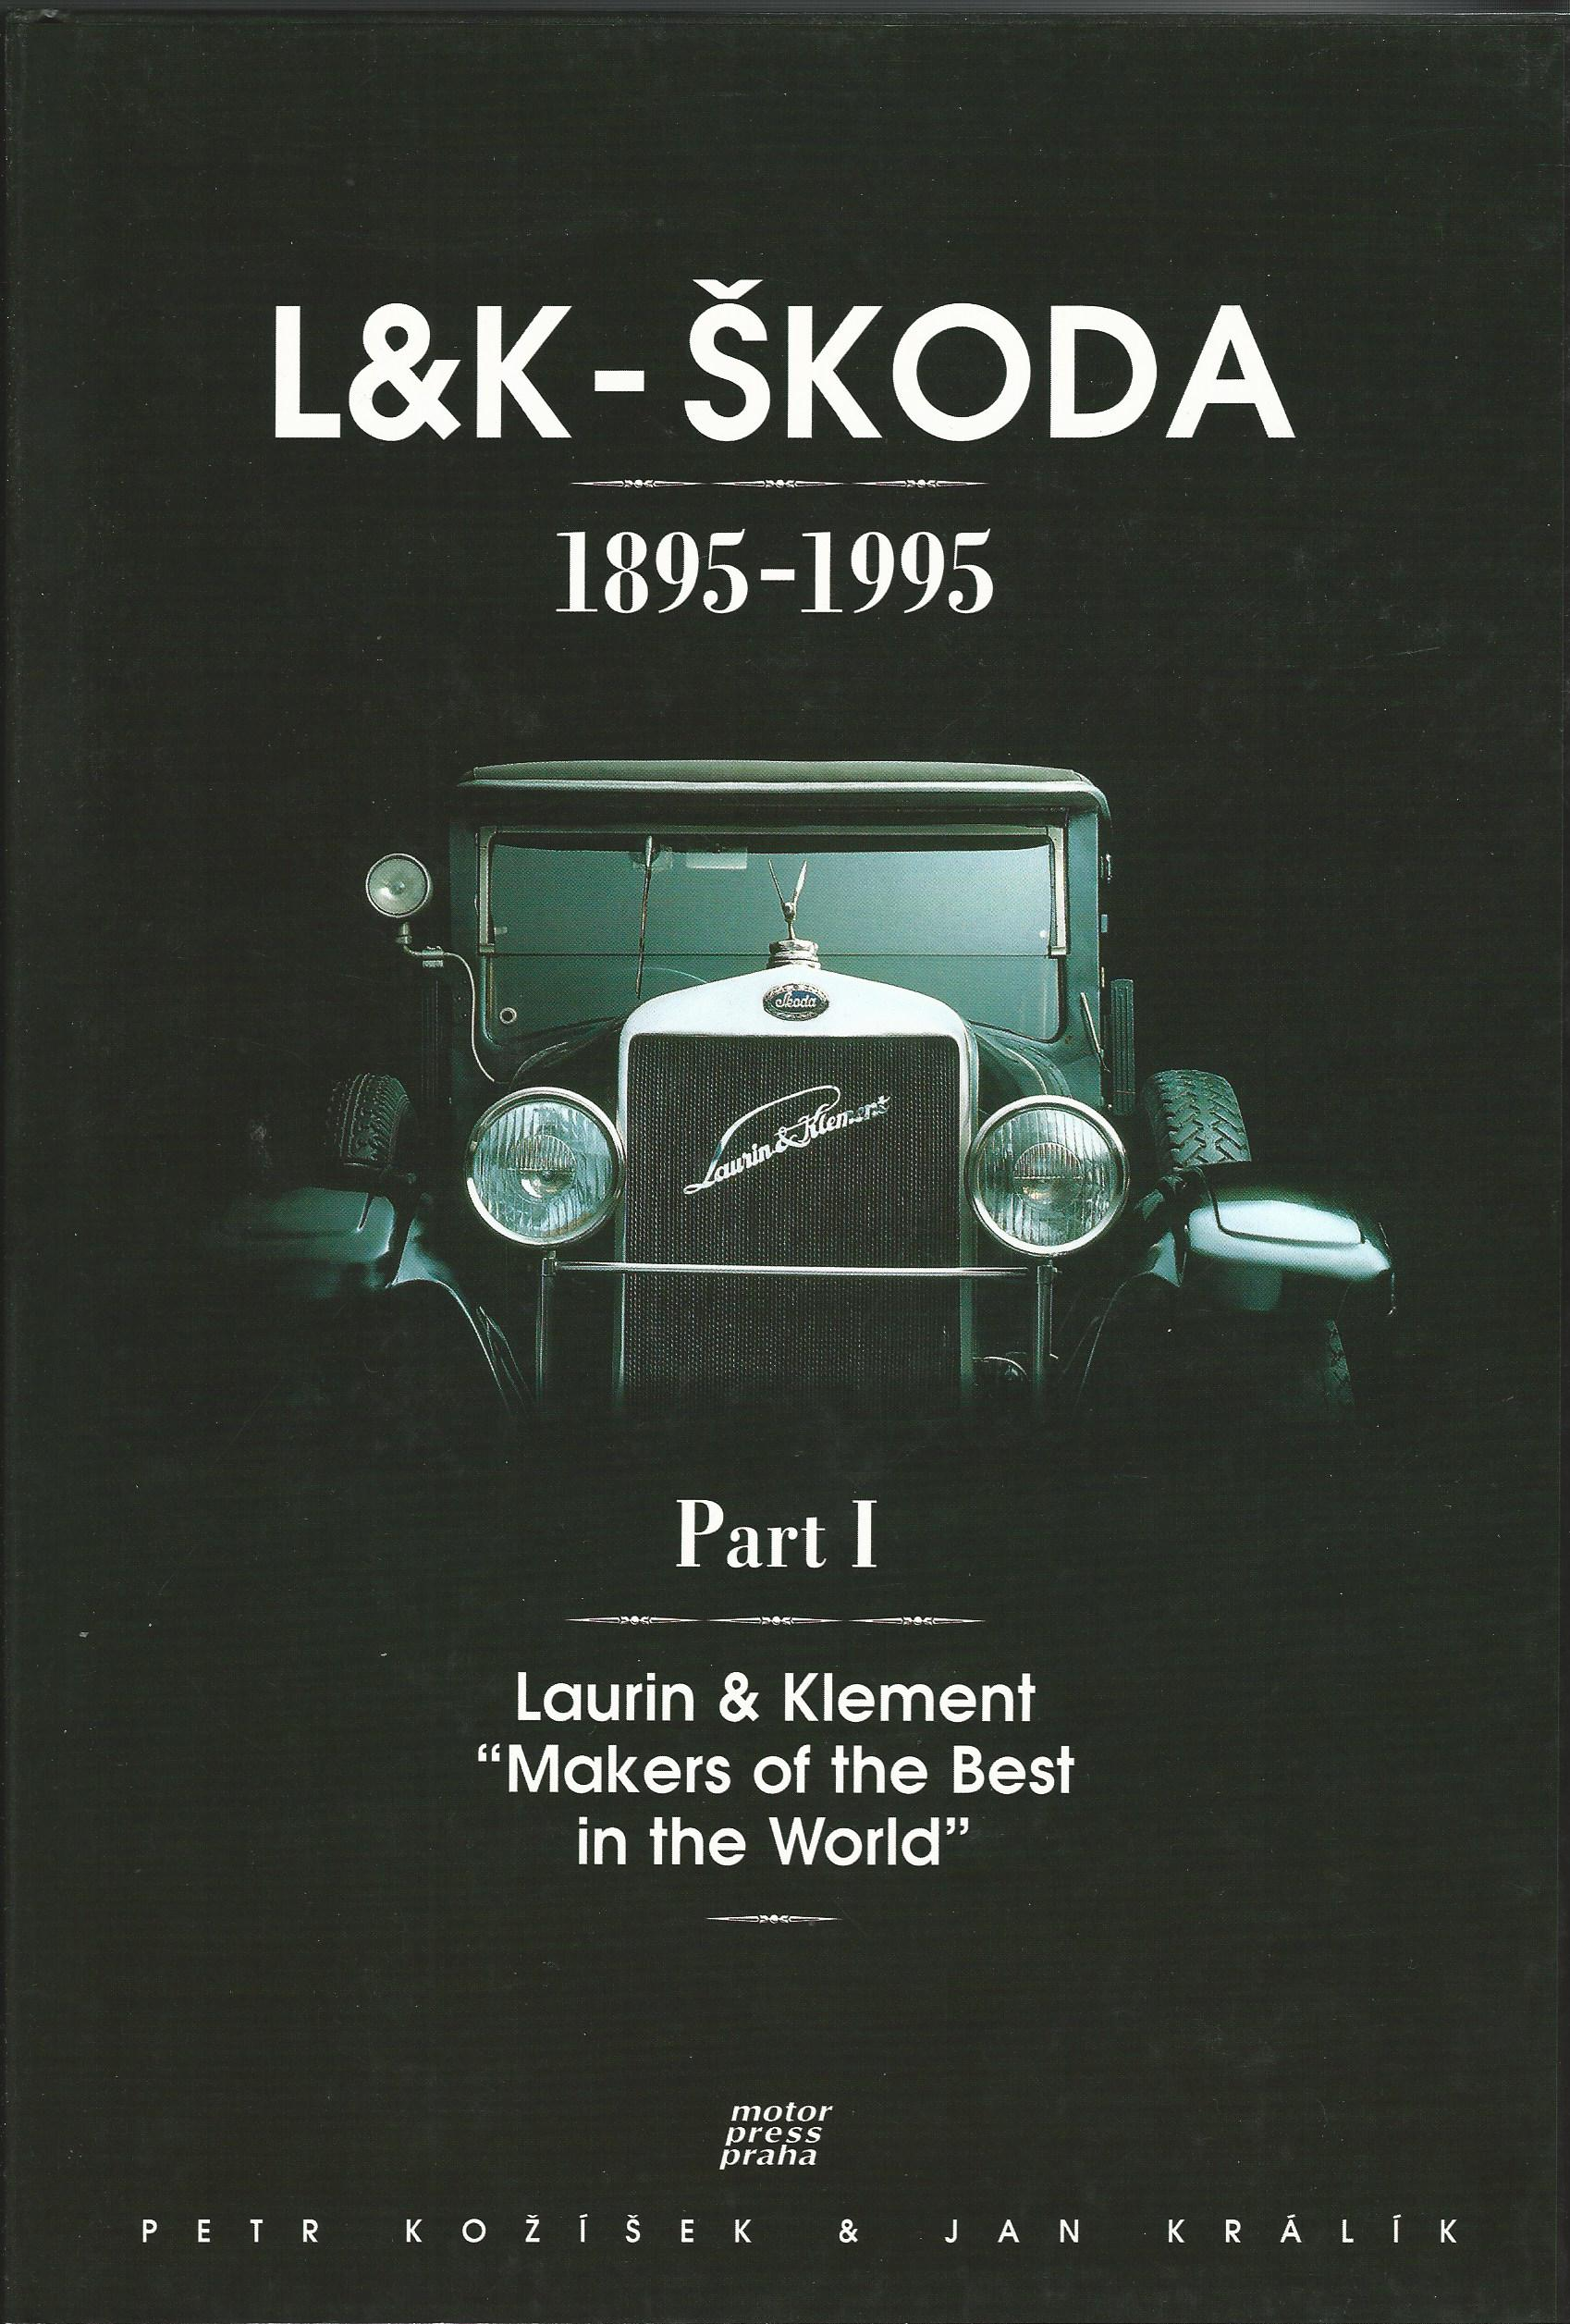 "Image for L&K - Skoda 1895-1995;Part I, Laurin & Klement ""Makers of the Best in the World""; Part II, The Flight of the Winged Arrow - Two Volumes."